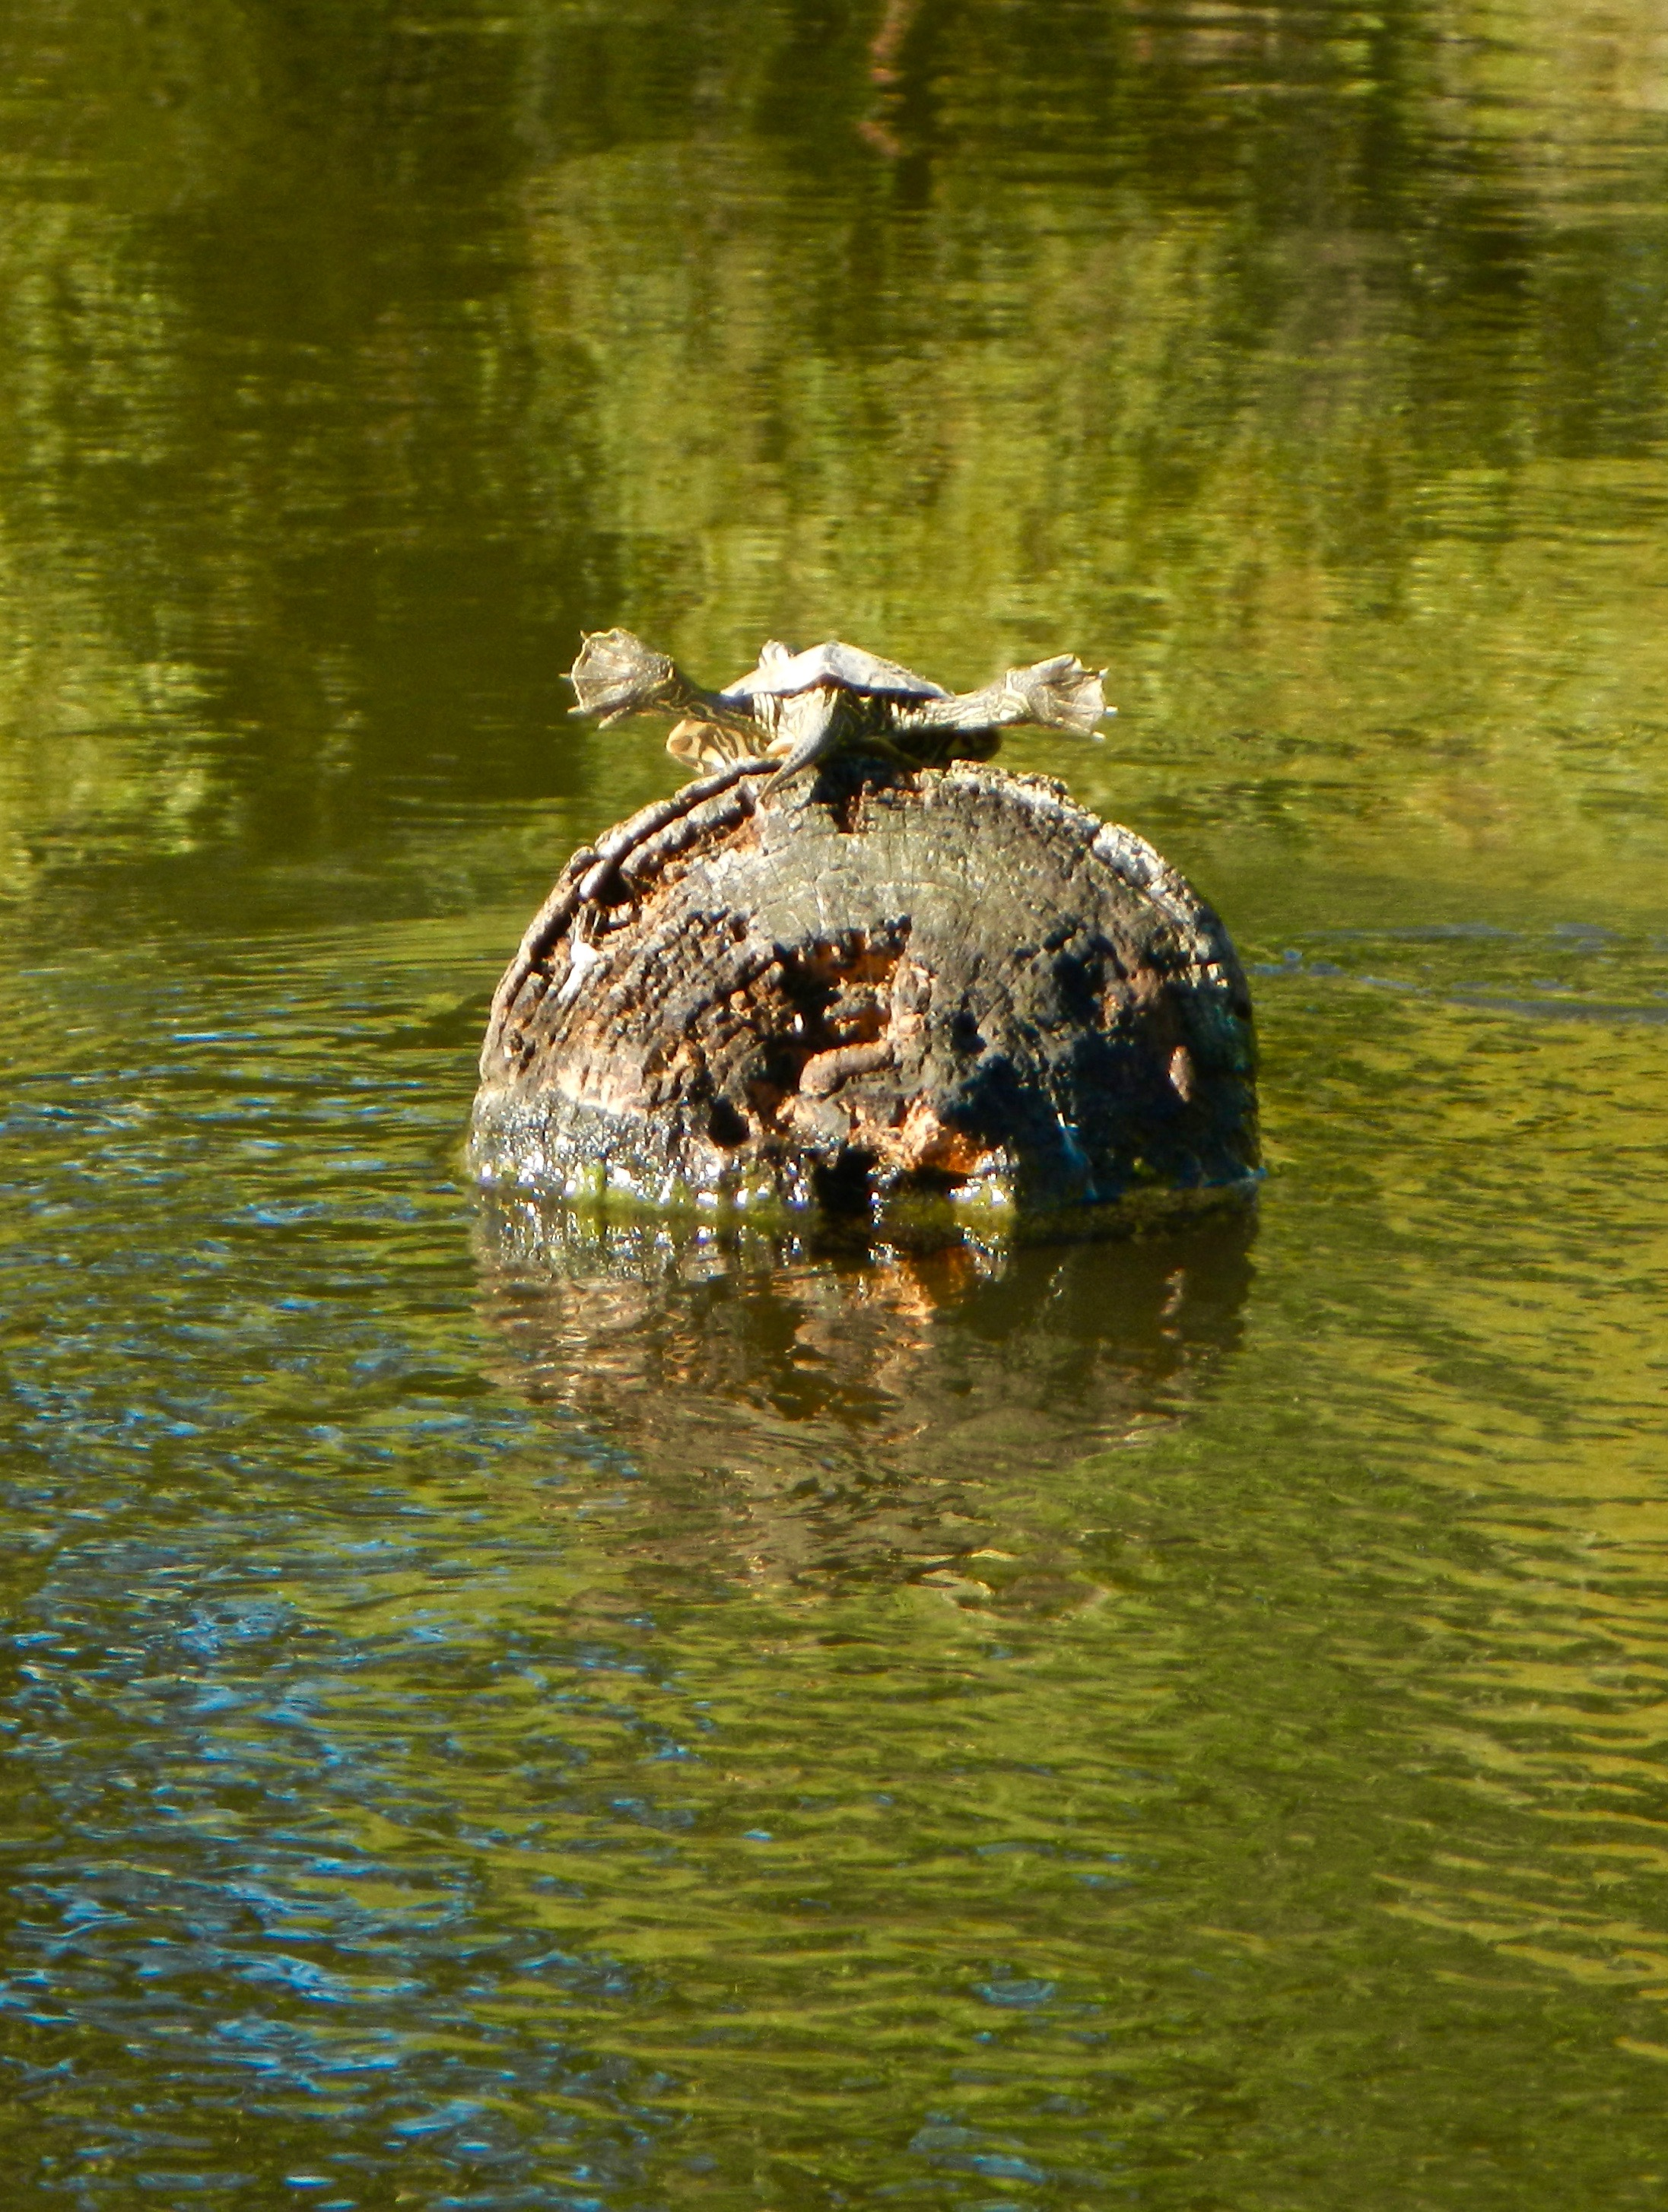 turtle-on-a-log-in-rogue-river